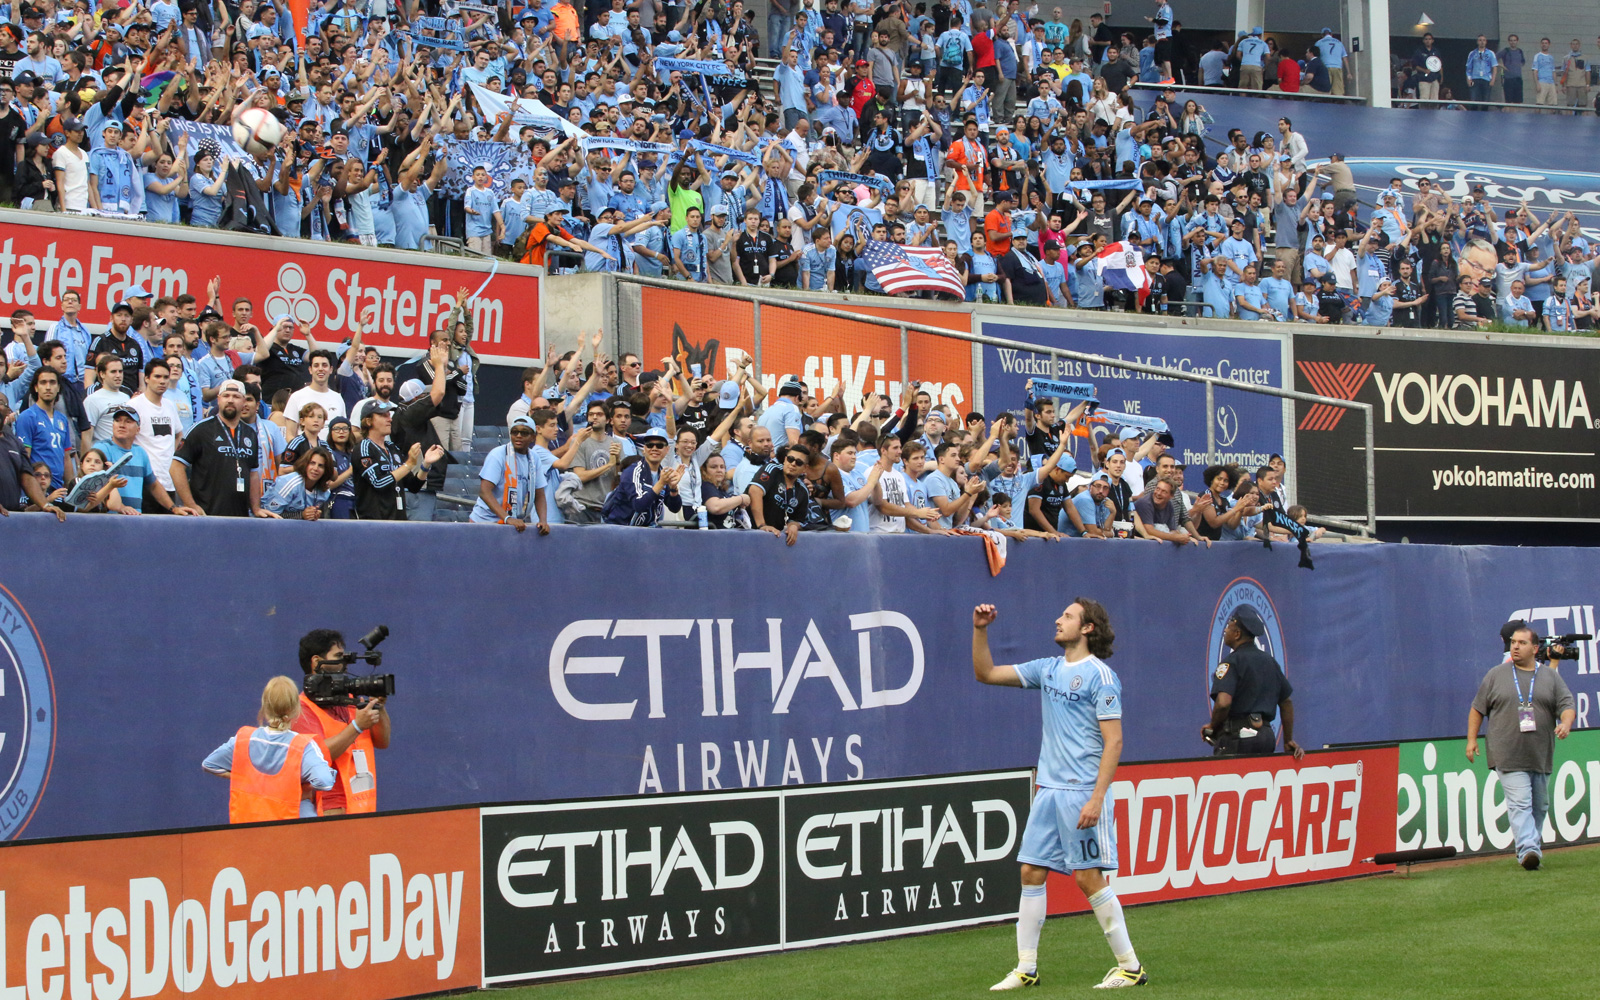 After a 3-1 loss to the New York Red Bulls, NYCFC midfielder Mix Diskerud (10) throws a ball into the home supporters section. The gesture earned Diskerud one final cheer from his fans despite the result.